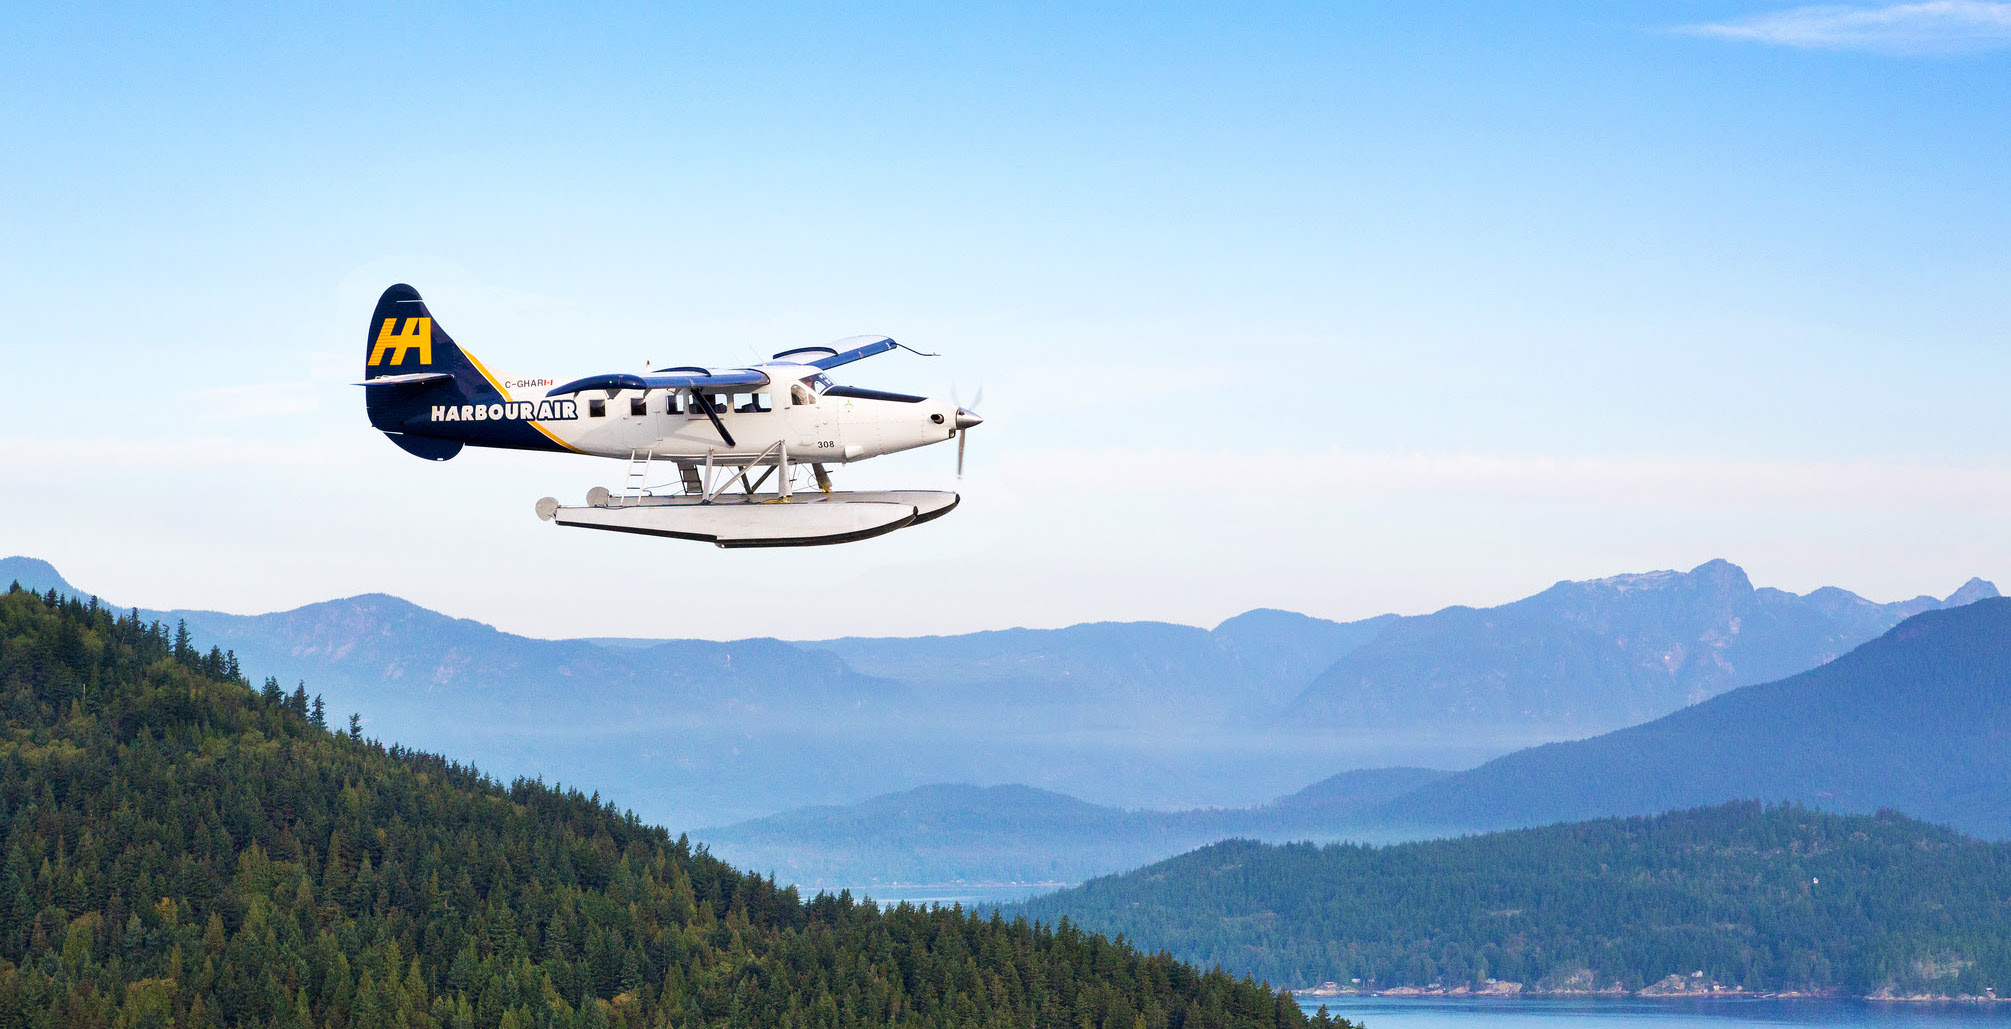 Fly direct to the heart of Tofino with Harbour Air and Tofino Resort + Marina